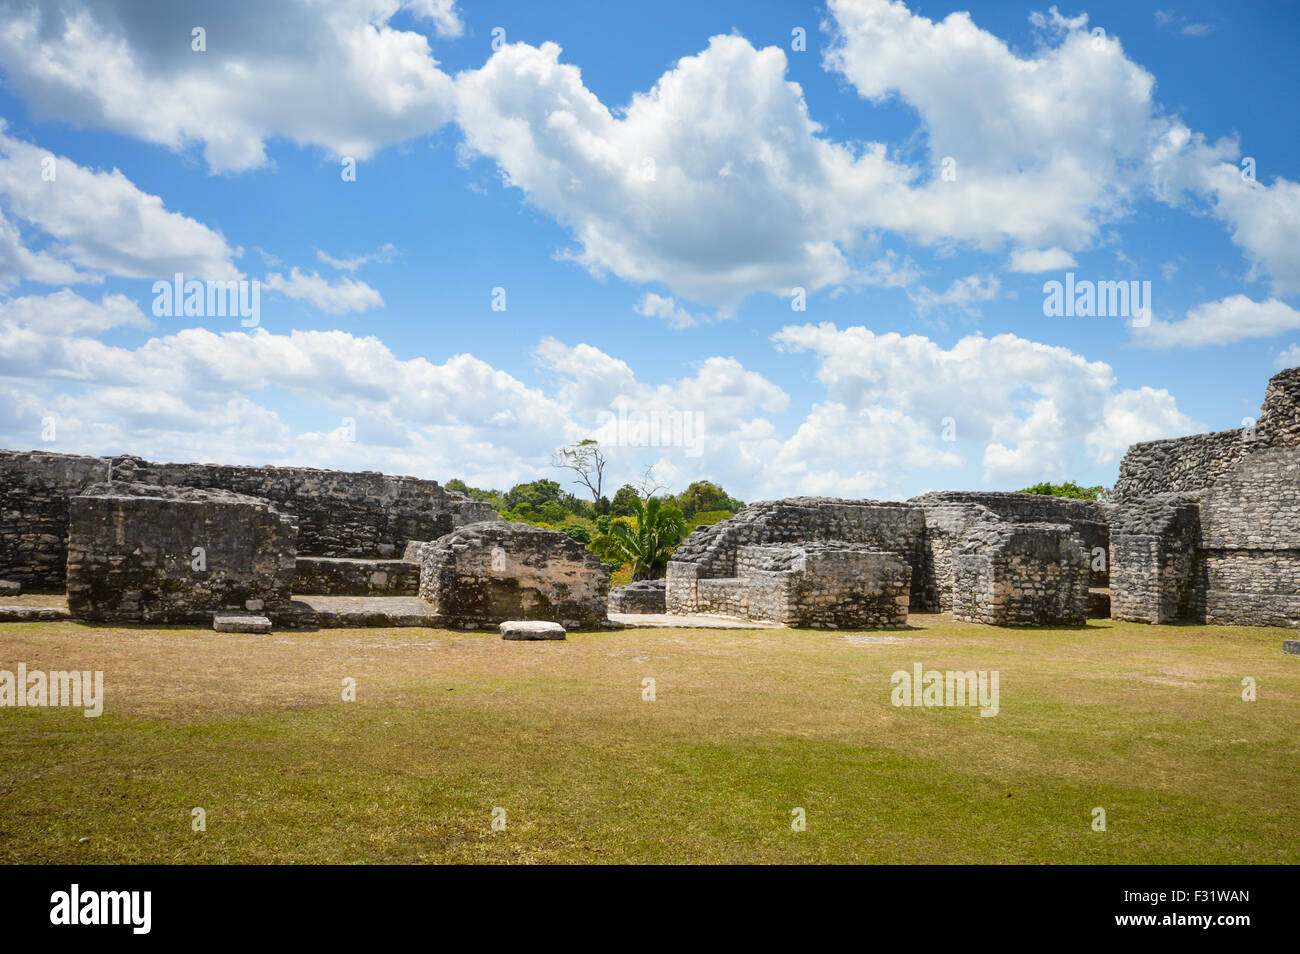 Caracol archaeological site of Maya civilization in Western Belize - Stock Image